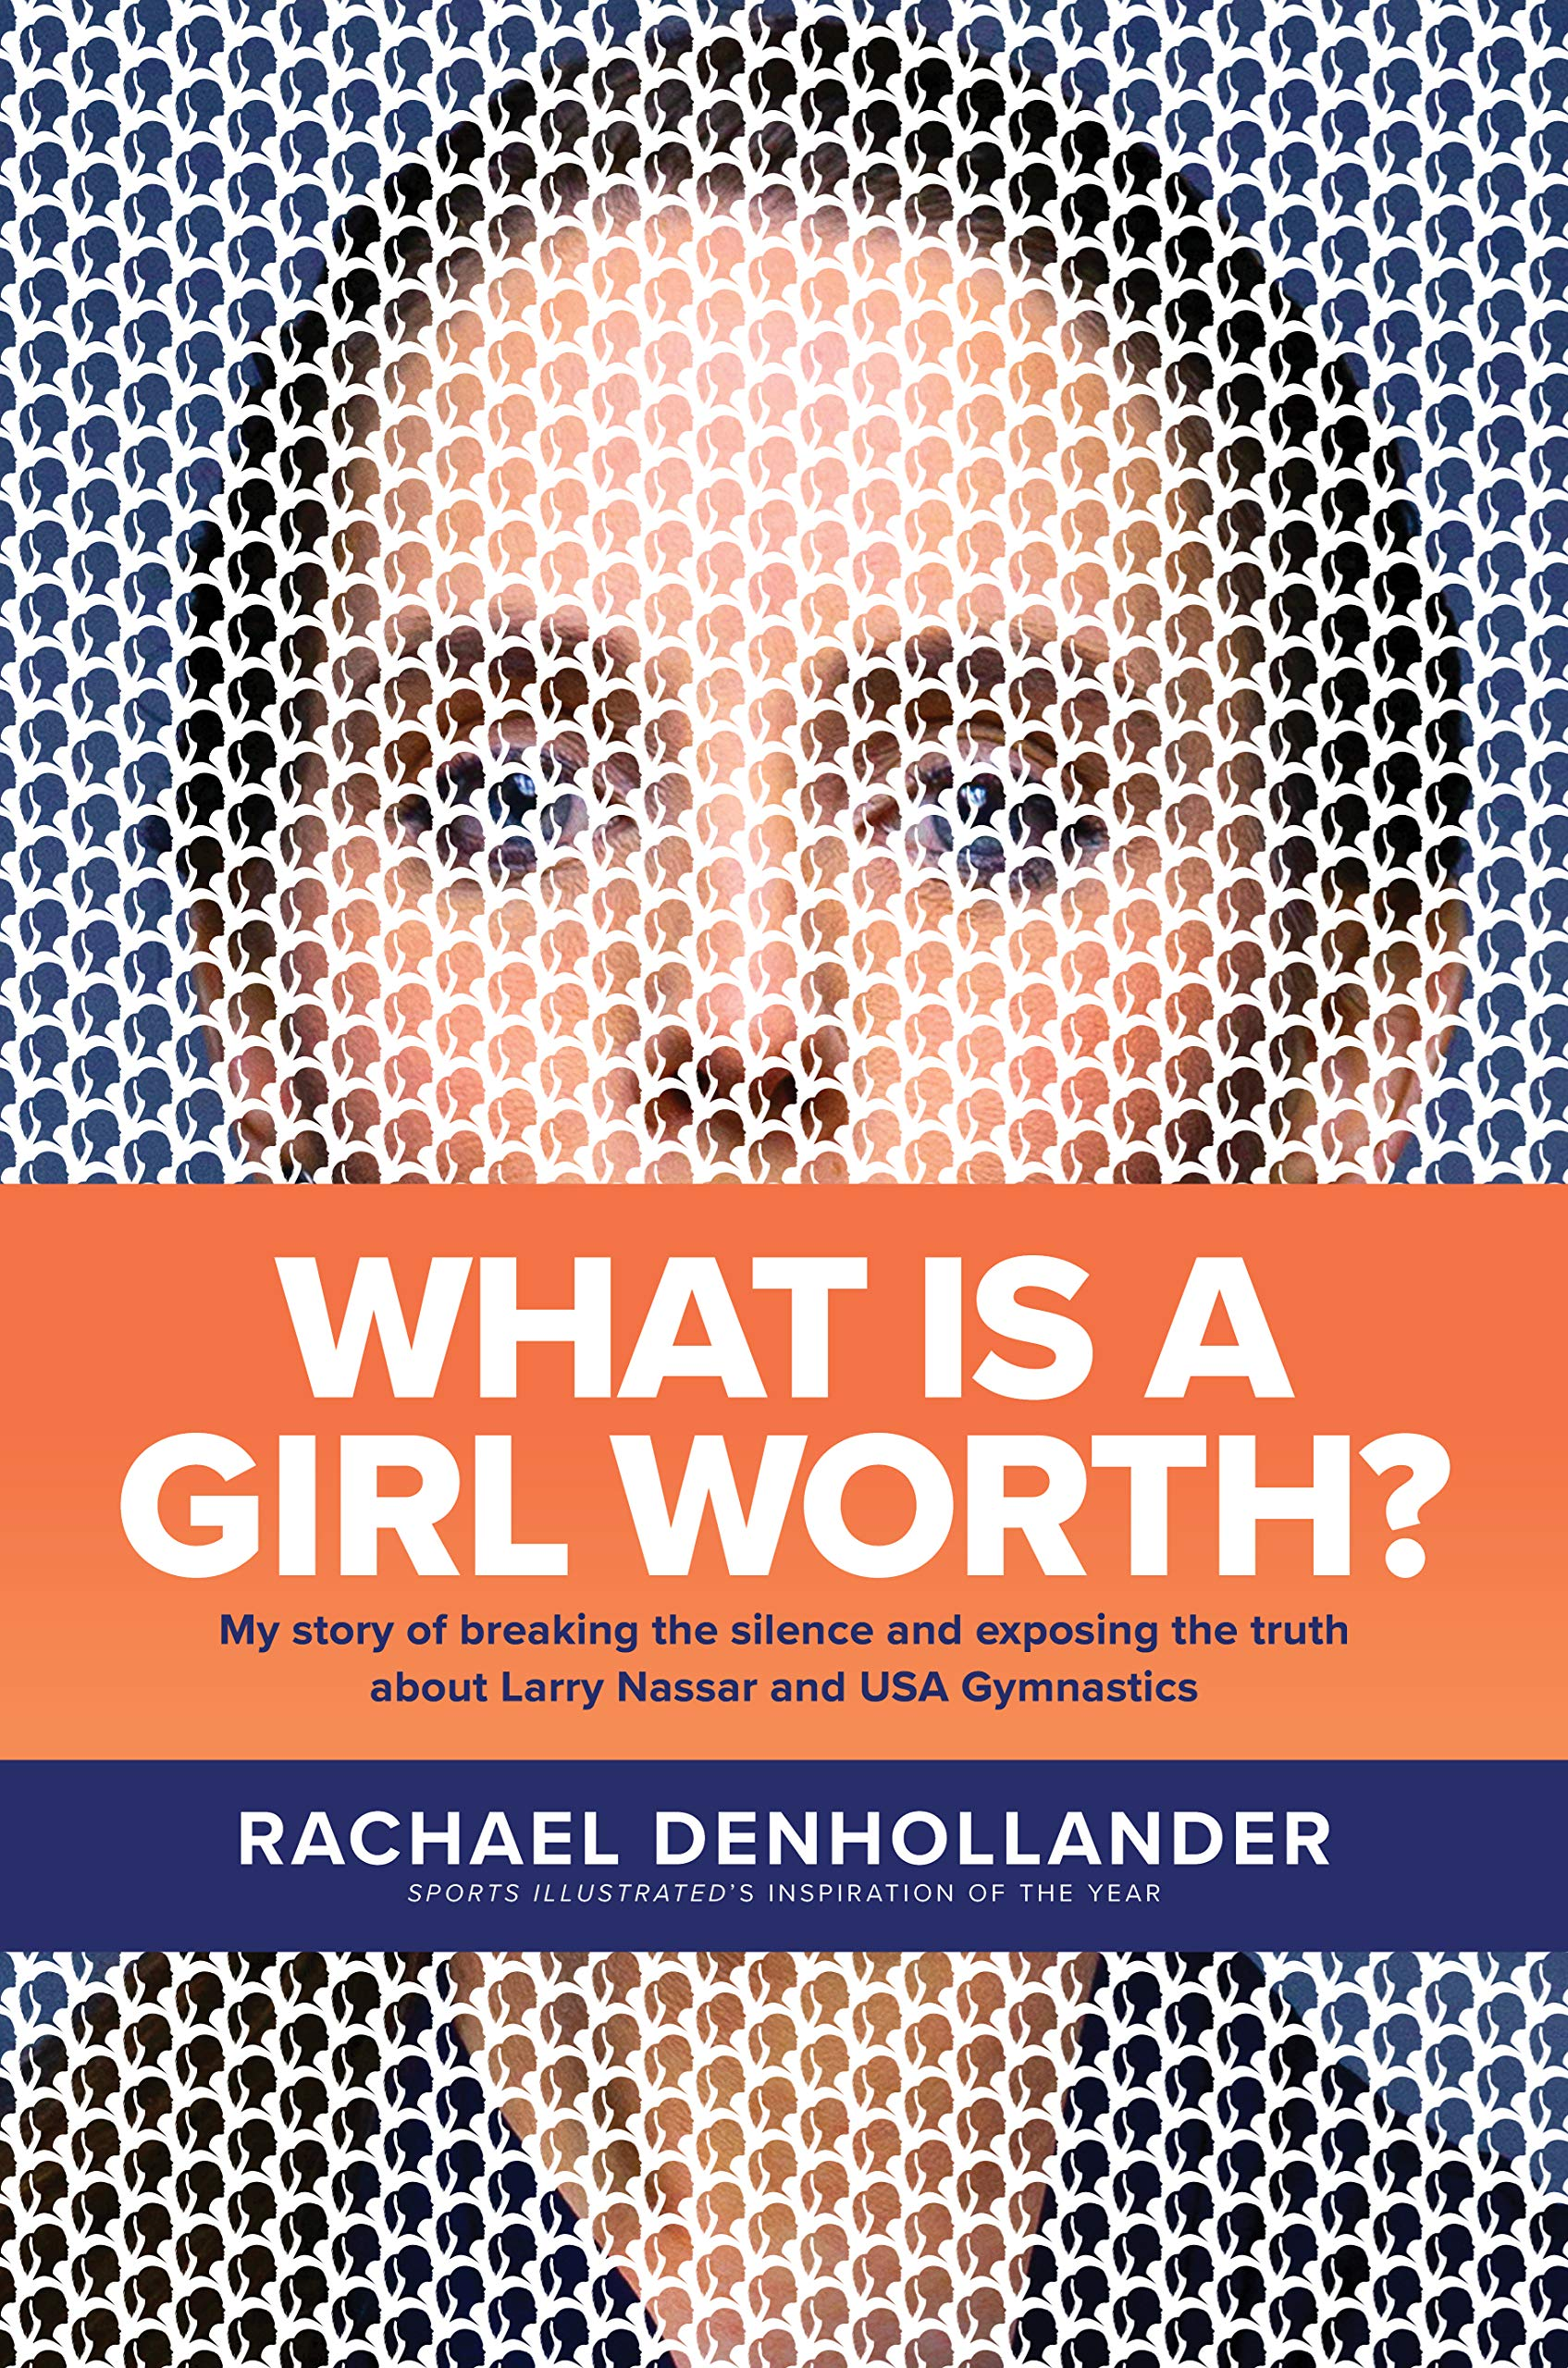 What is a Girl Worth? My Story of Breaking the Silence and Exposing the Truth about Larry Nassar and USA Gymnastics by Rachael Denhollander